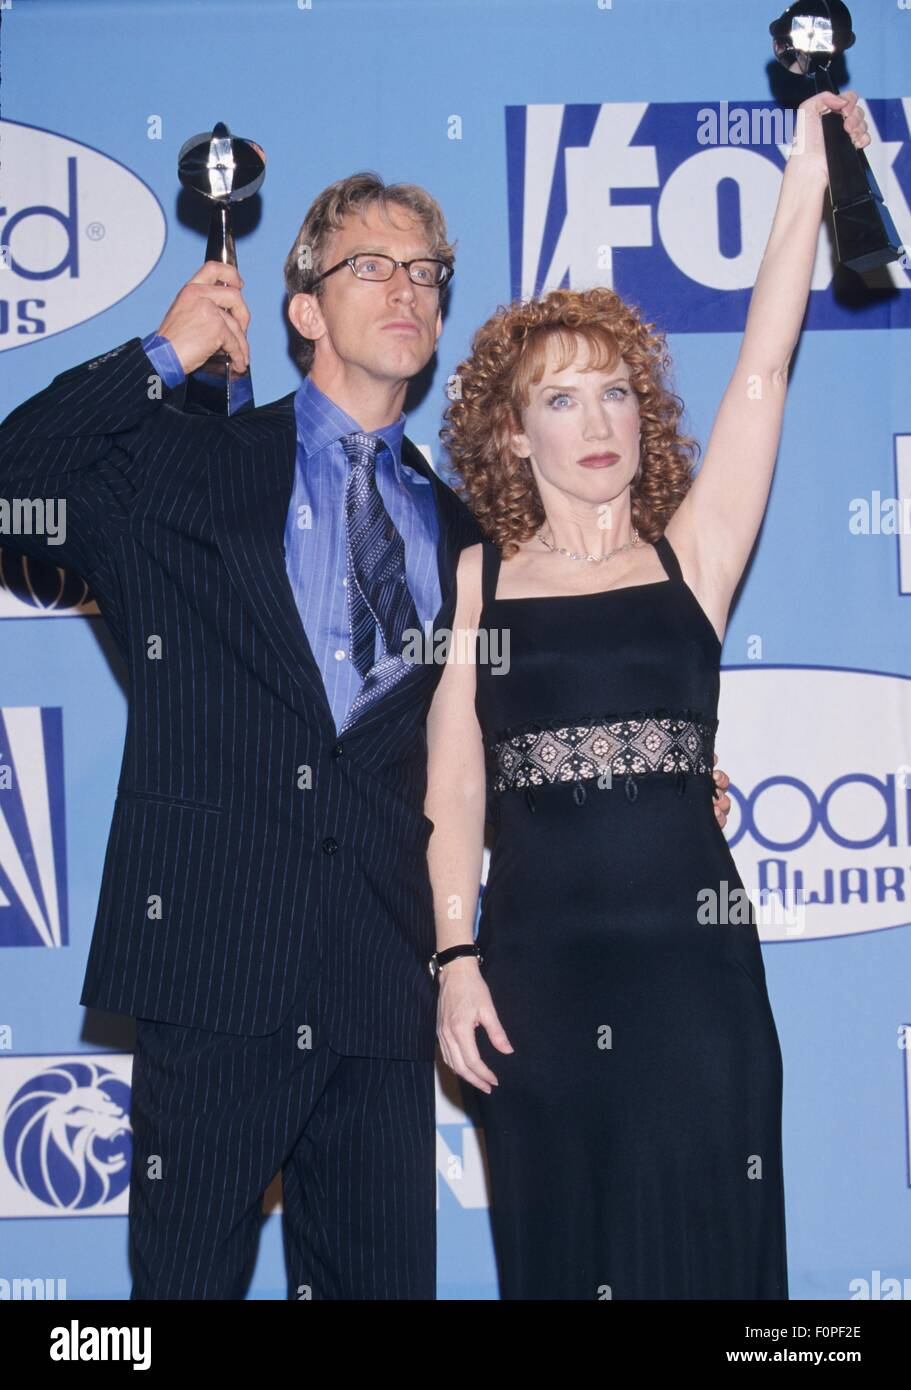 Image result for andy dick kathy griffin